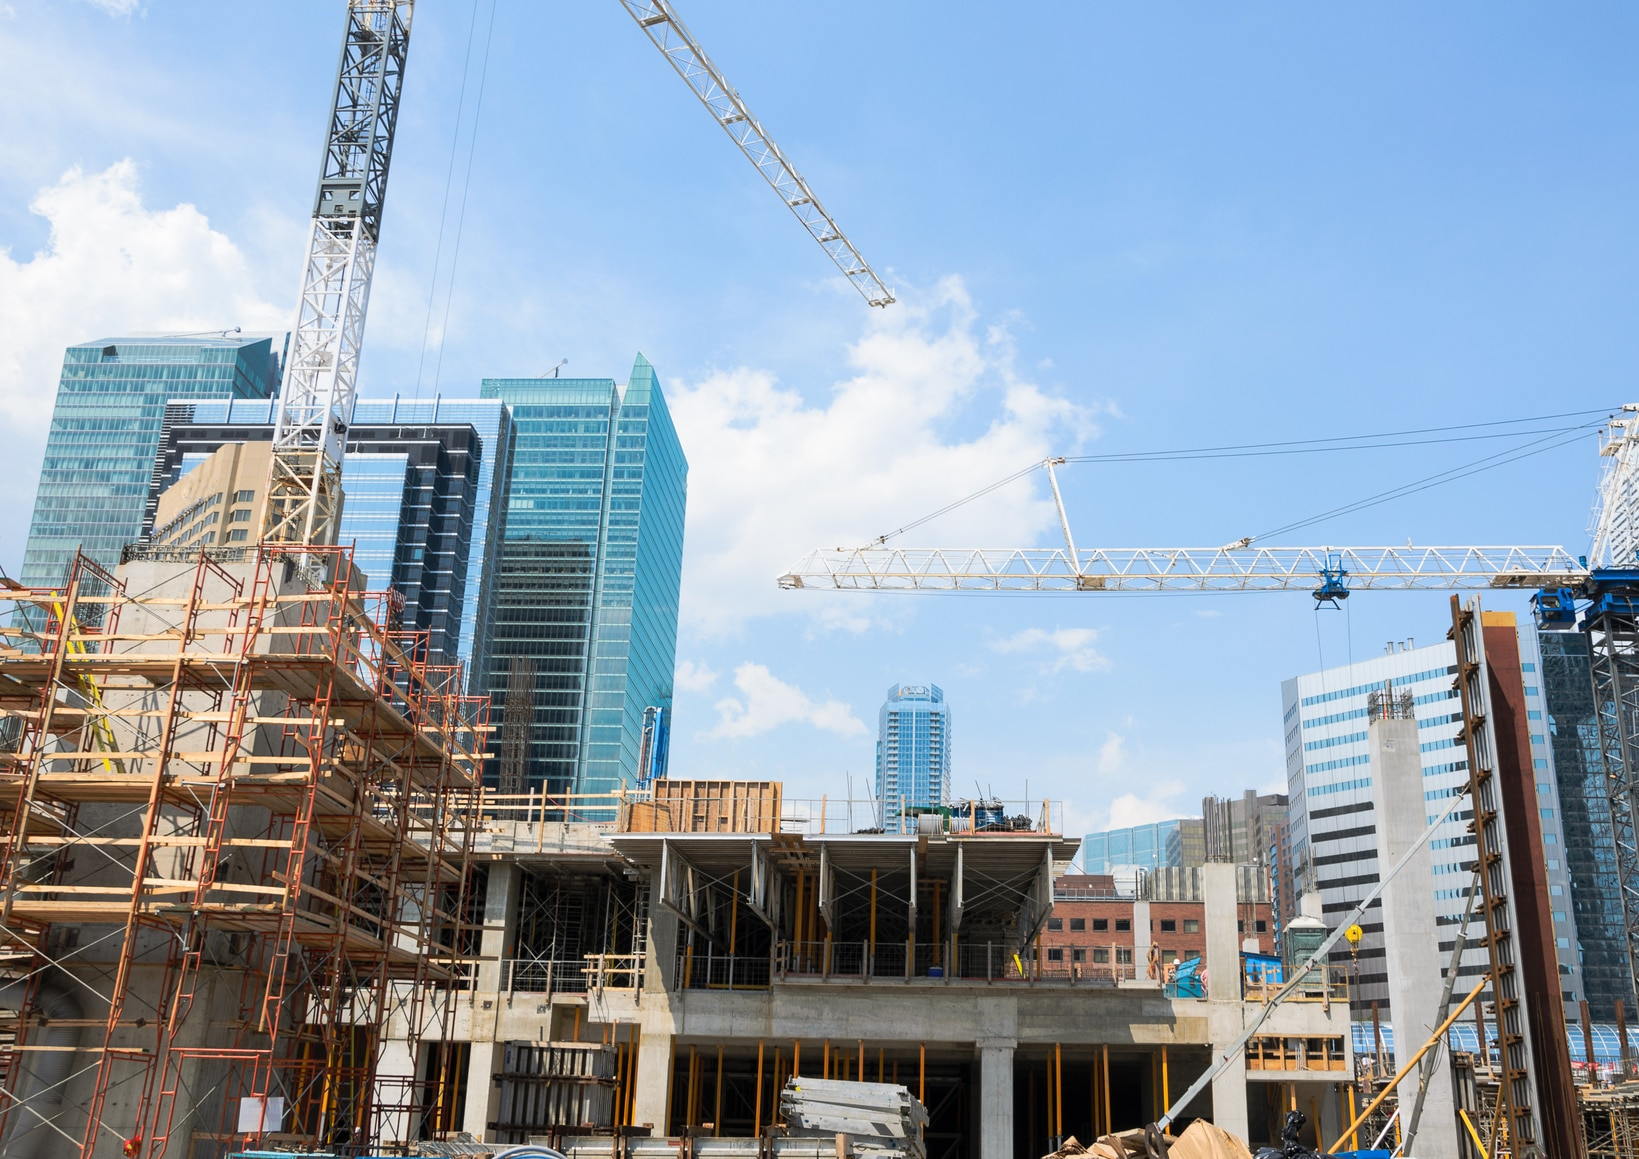 Commercial Real Estate Growth for Northern California